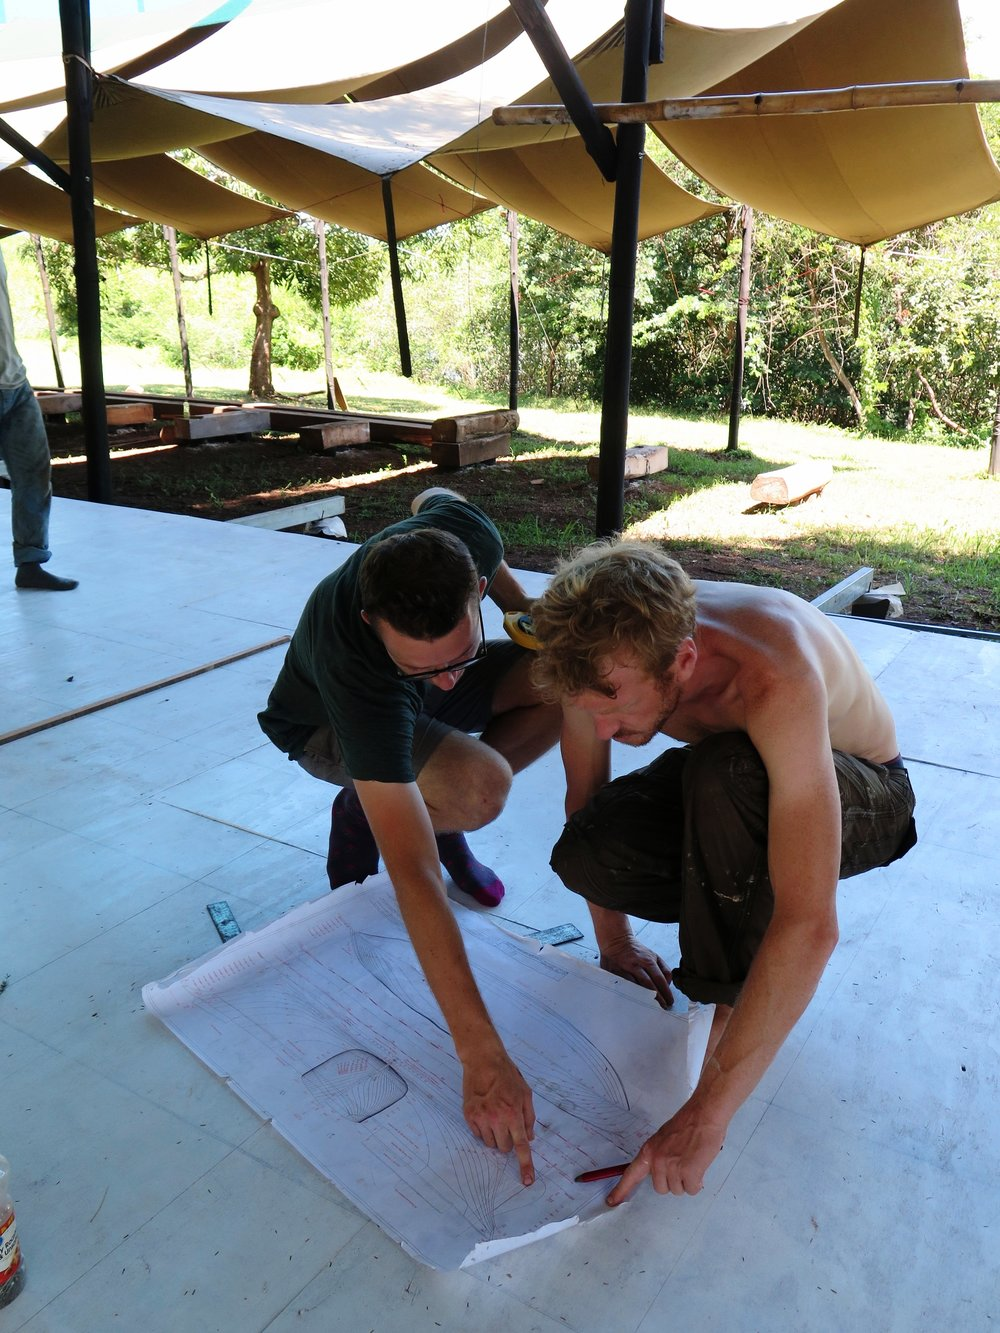 Prince Harry & Prince Charles checking out  Ceiba 's plans on the lofting floor. They decided to take a break from their royal duties in search of a more fulfilling, eco-shipbuilding lifestyle.